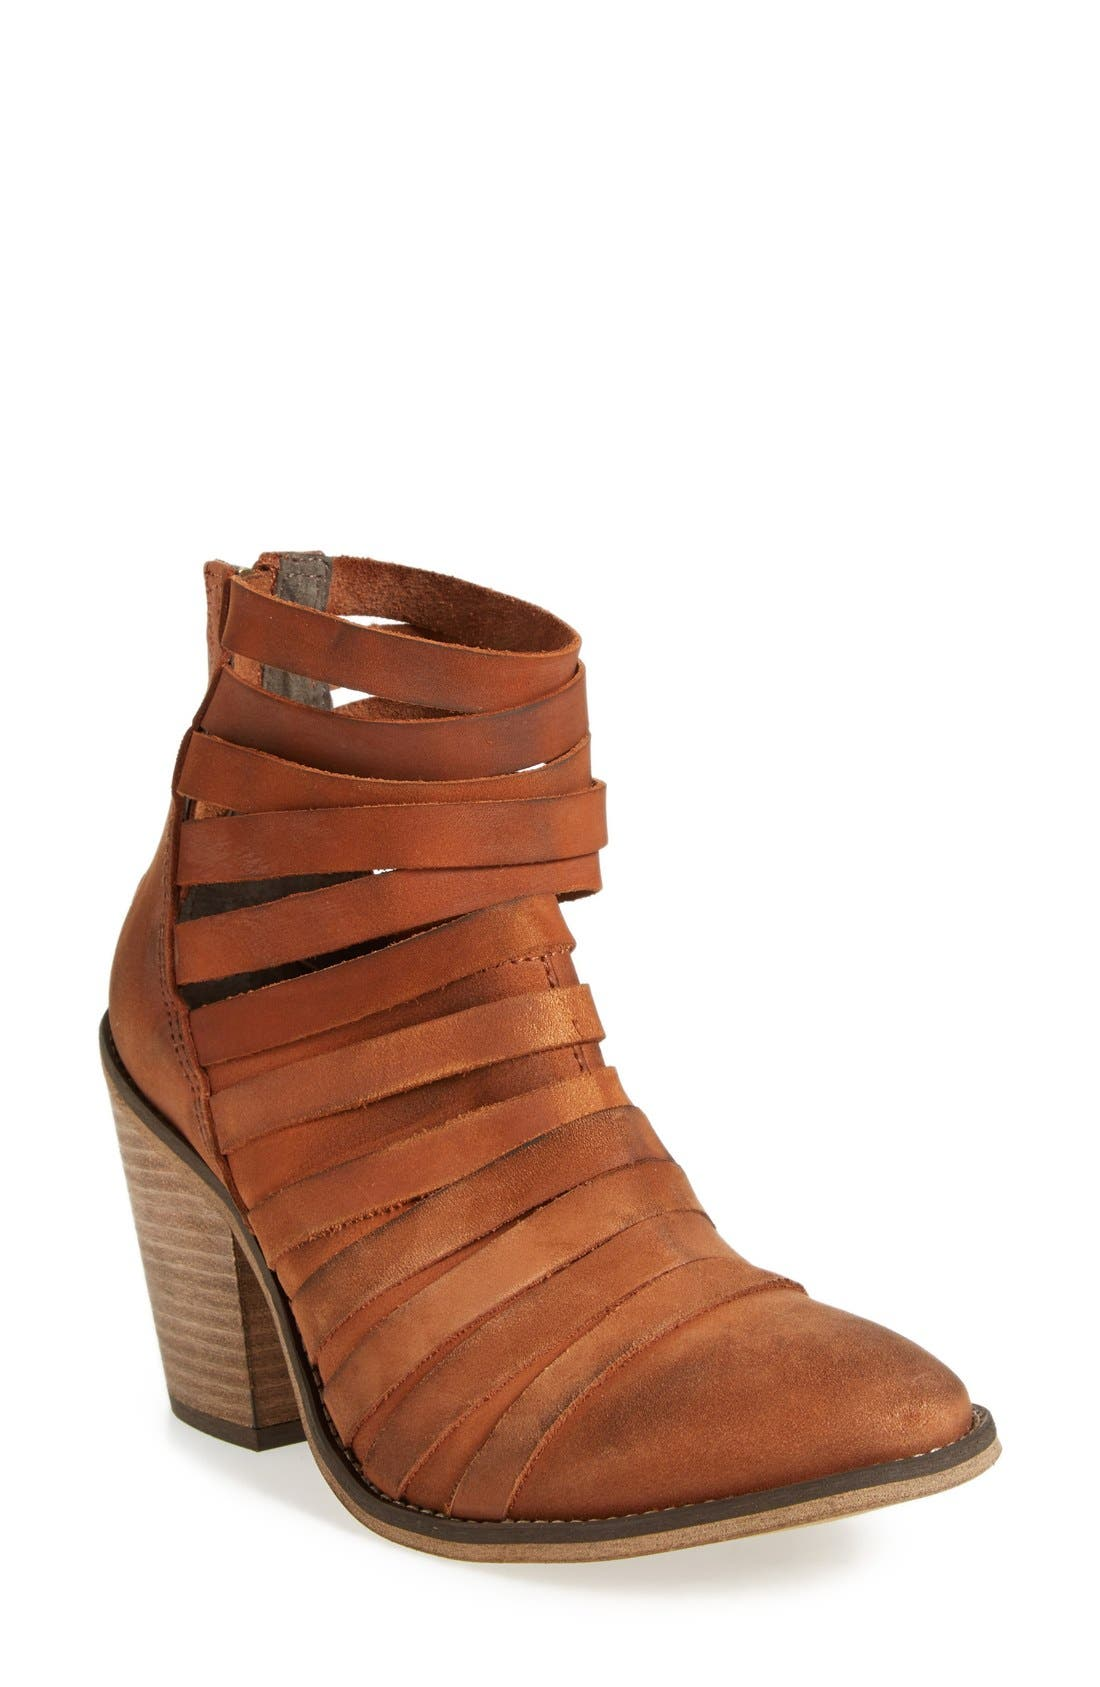 'Hybrid' Strappy Leather Bootie,                             Main thumbnail 1, color,                             209